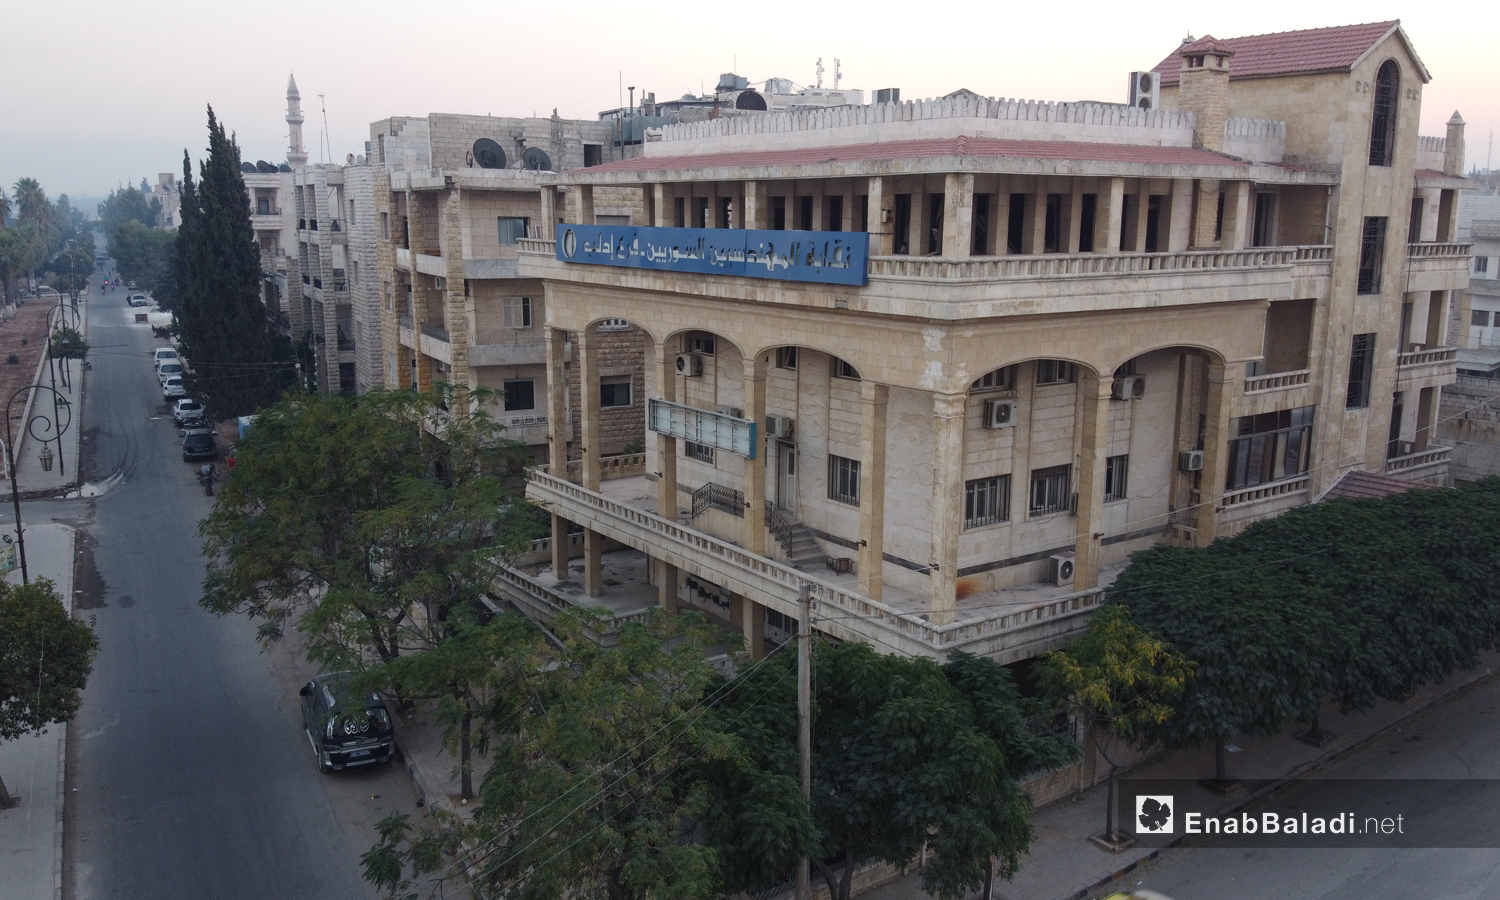 The Engineers Union's building in Idlib, which the Syrian Salvation Government (SSG) took control of in October 2020 - 3 September 2020 (Enab Baladi / Yousef Ghuraibi)